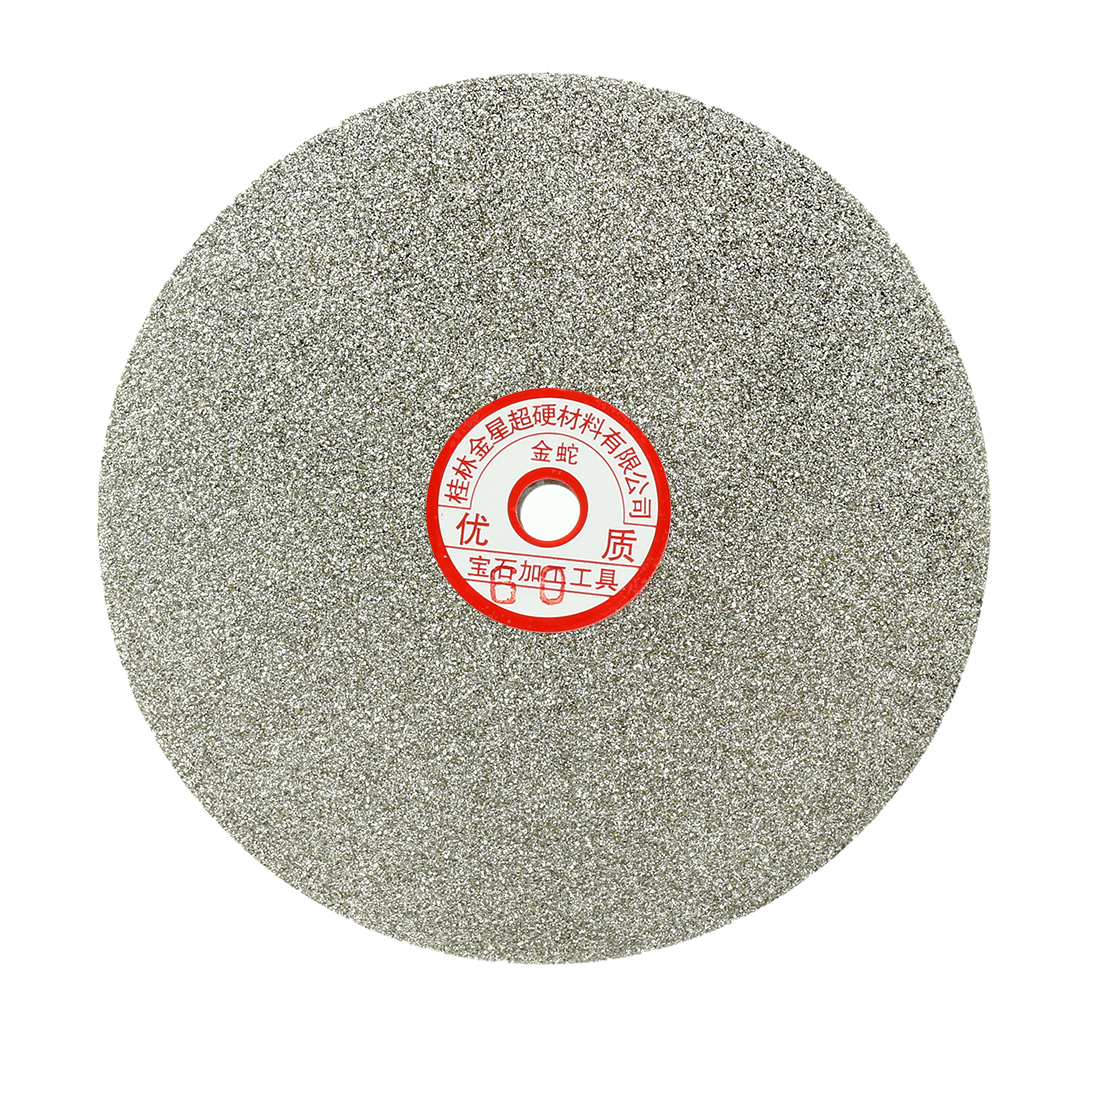 200mm 8-inch Grit 60 Diamond Coated Flat Lap Disk Wheel Grinding Sanding Disc